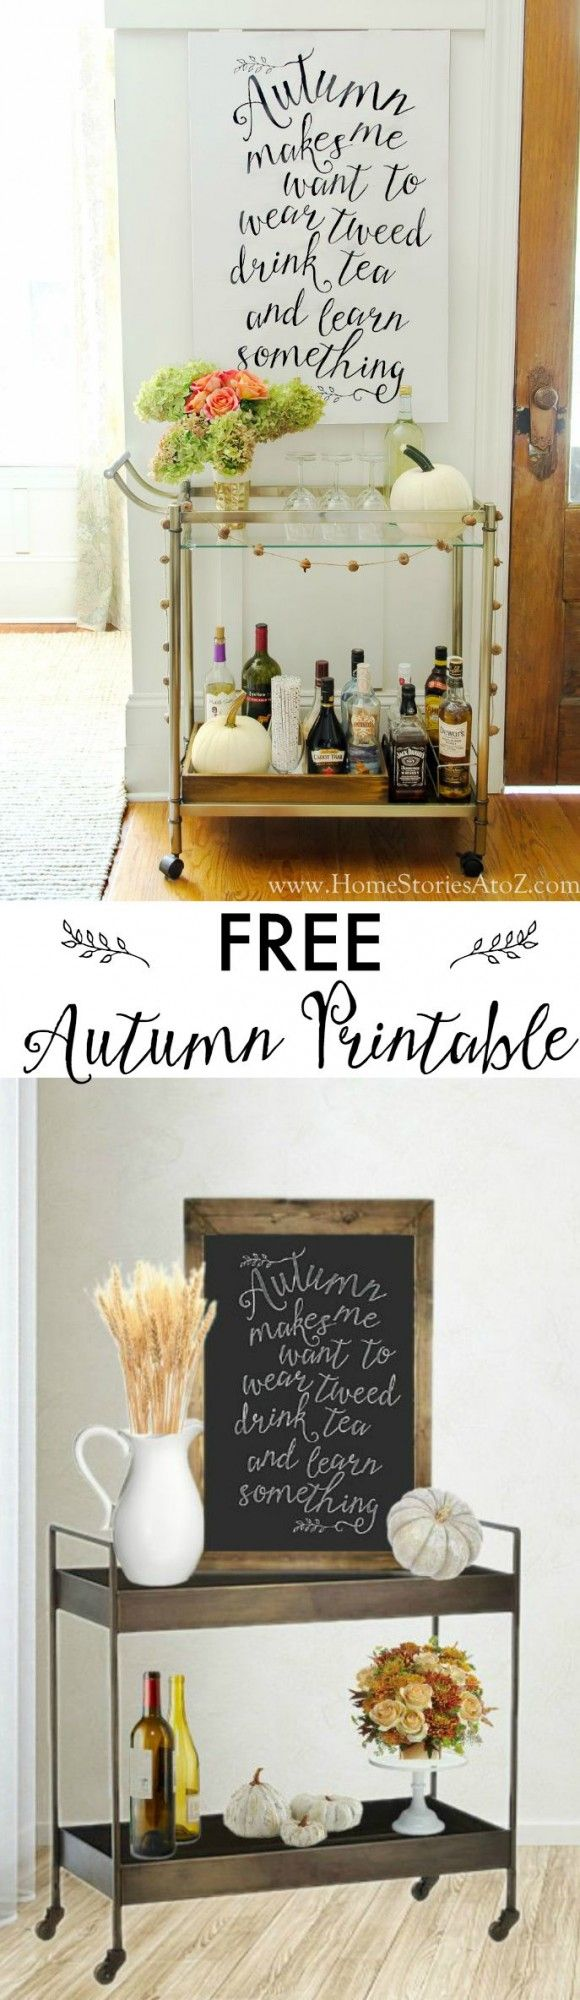 FREE autumn fall printable in either chalkboard art or black writing on white. So cute!